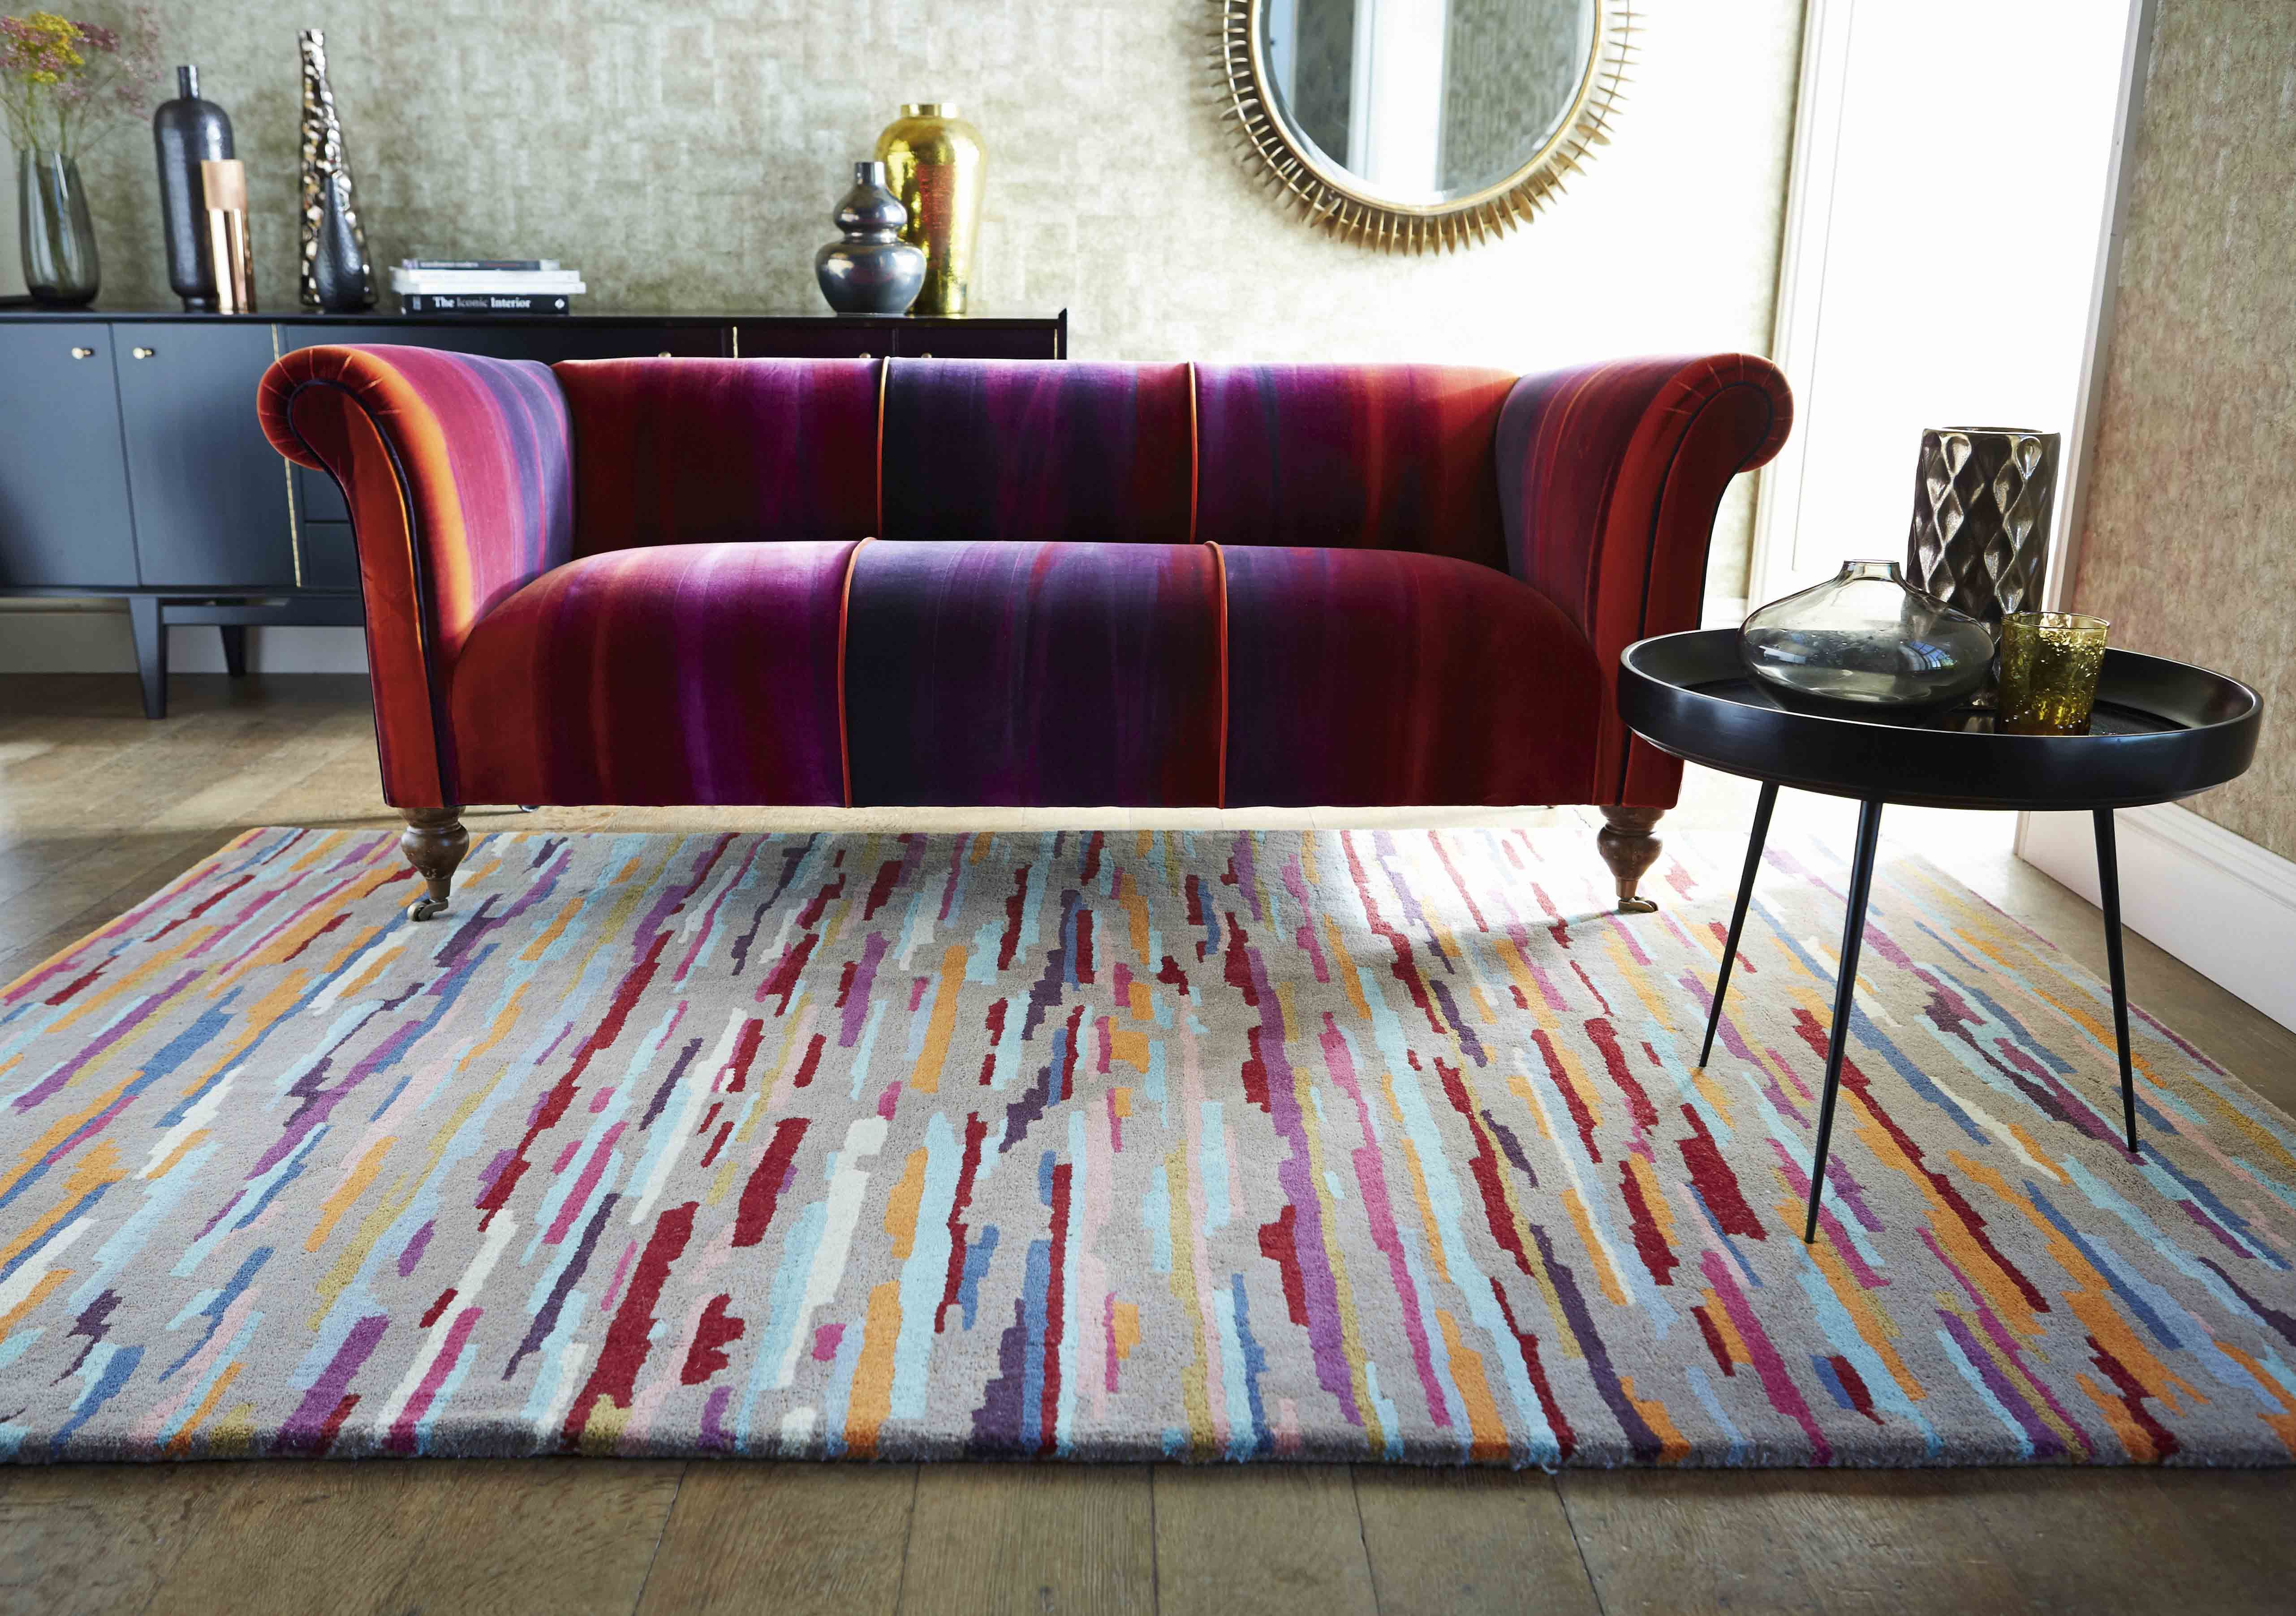 Nuru Chair Nuru Tabasco Harlequin Rug Collection 2015